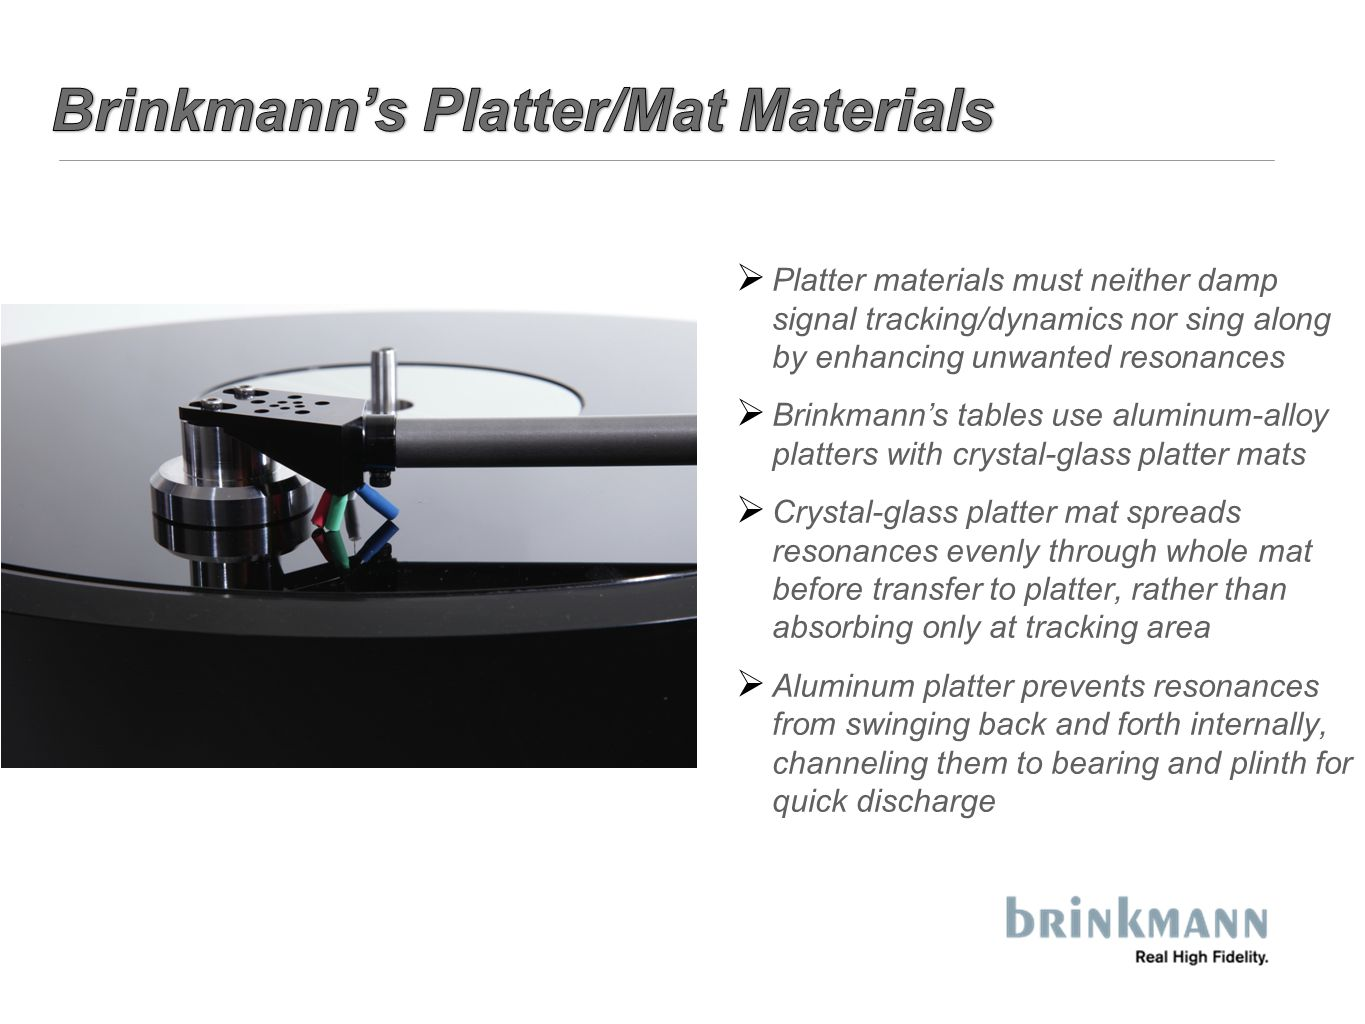  Platter materials must neither damp signal tracking/dynamics nor sing along by enhancing unwanted resonances  Brinkmann's tables use aluminum-alloy platters with crystal-glass platter mats  Crystal-glass platter mat spreads resonances evenly through whole mat before transfer to platter, rather than absorbing only at tracking area  Aluminum platter prevents resonances from swinging back and forth internally, channeling them to bearing and plinth for quick discharge